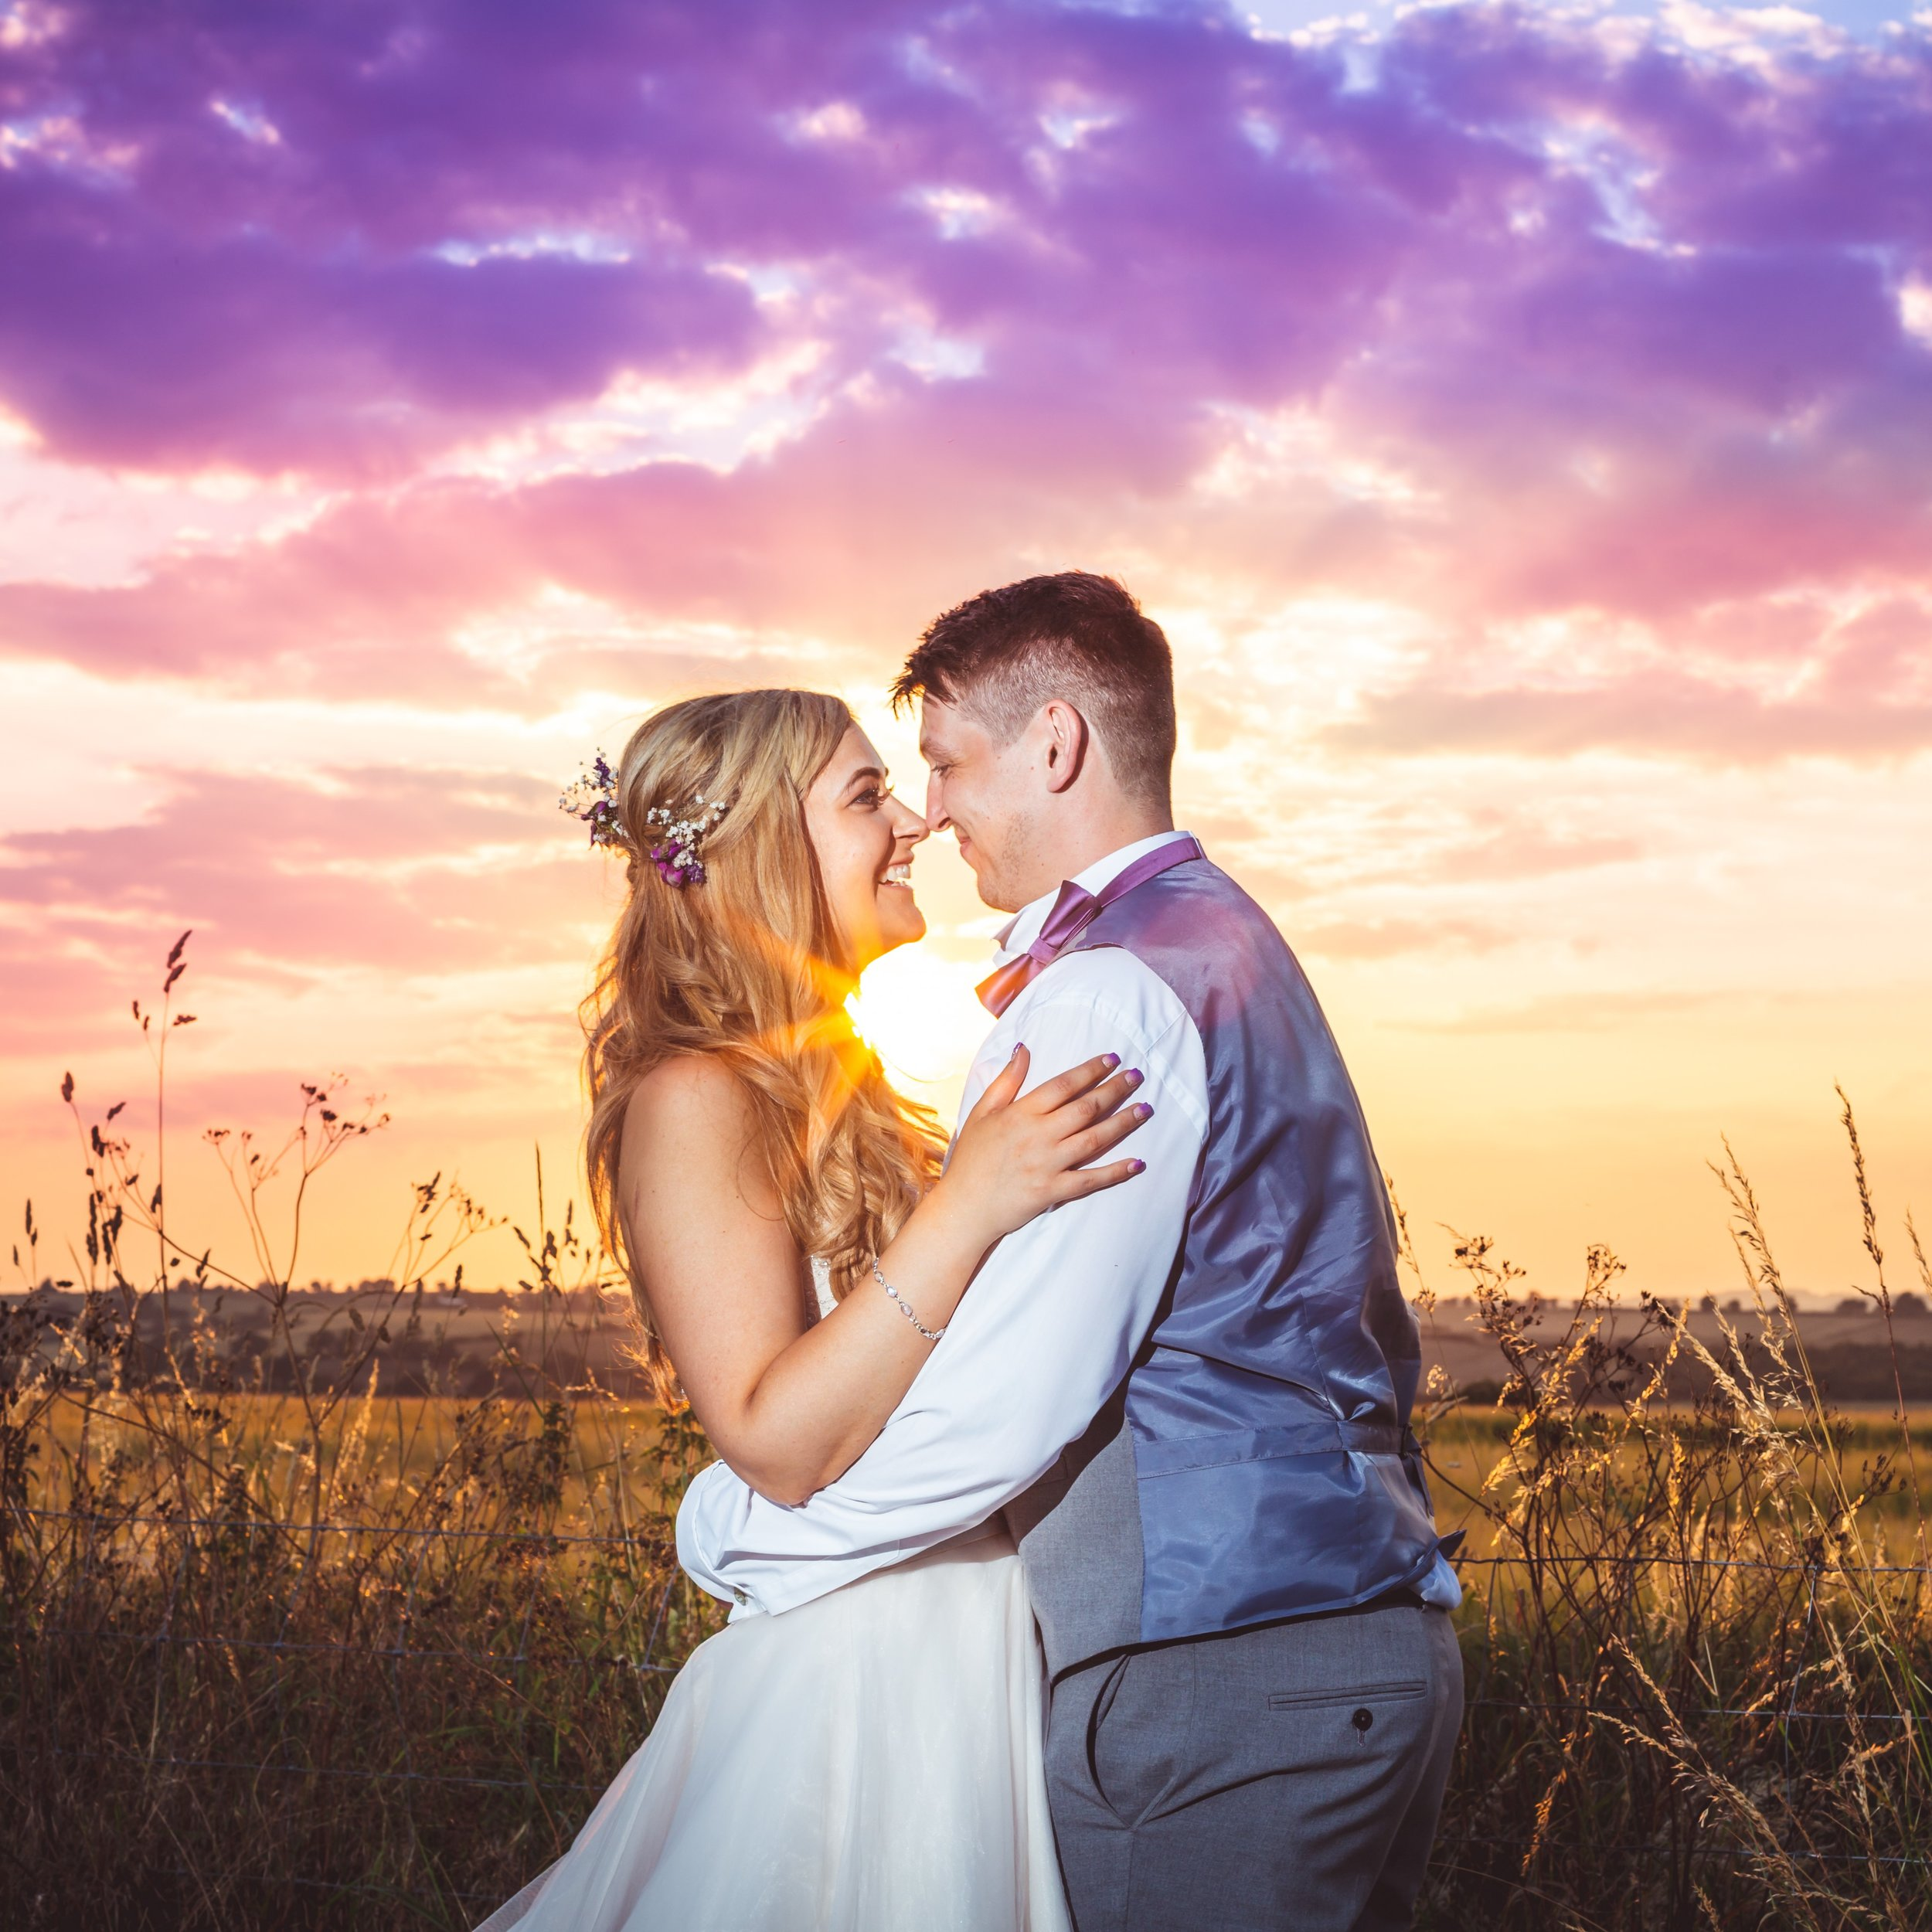 Sunset, bride and groom, Fotovida wedding photography, creative photography, best wedding photographers in Northamptonshire, Leicestershire, Rutland, excellent reviews, Sara Mayer, Douglas Mayer